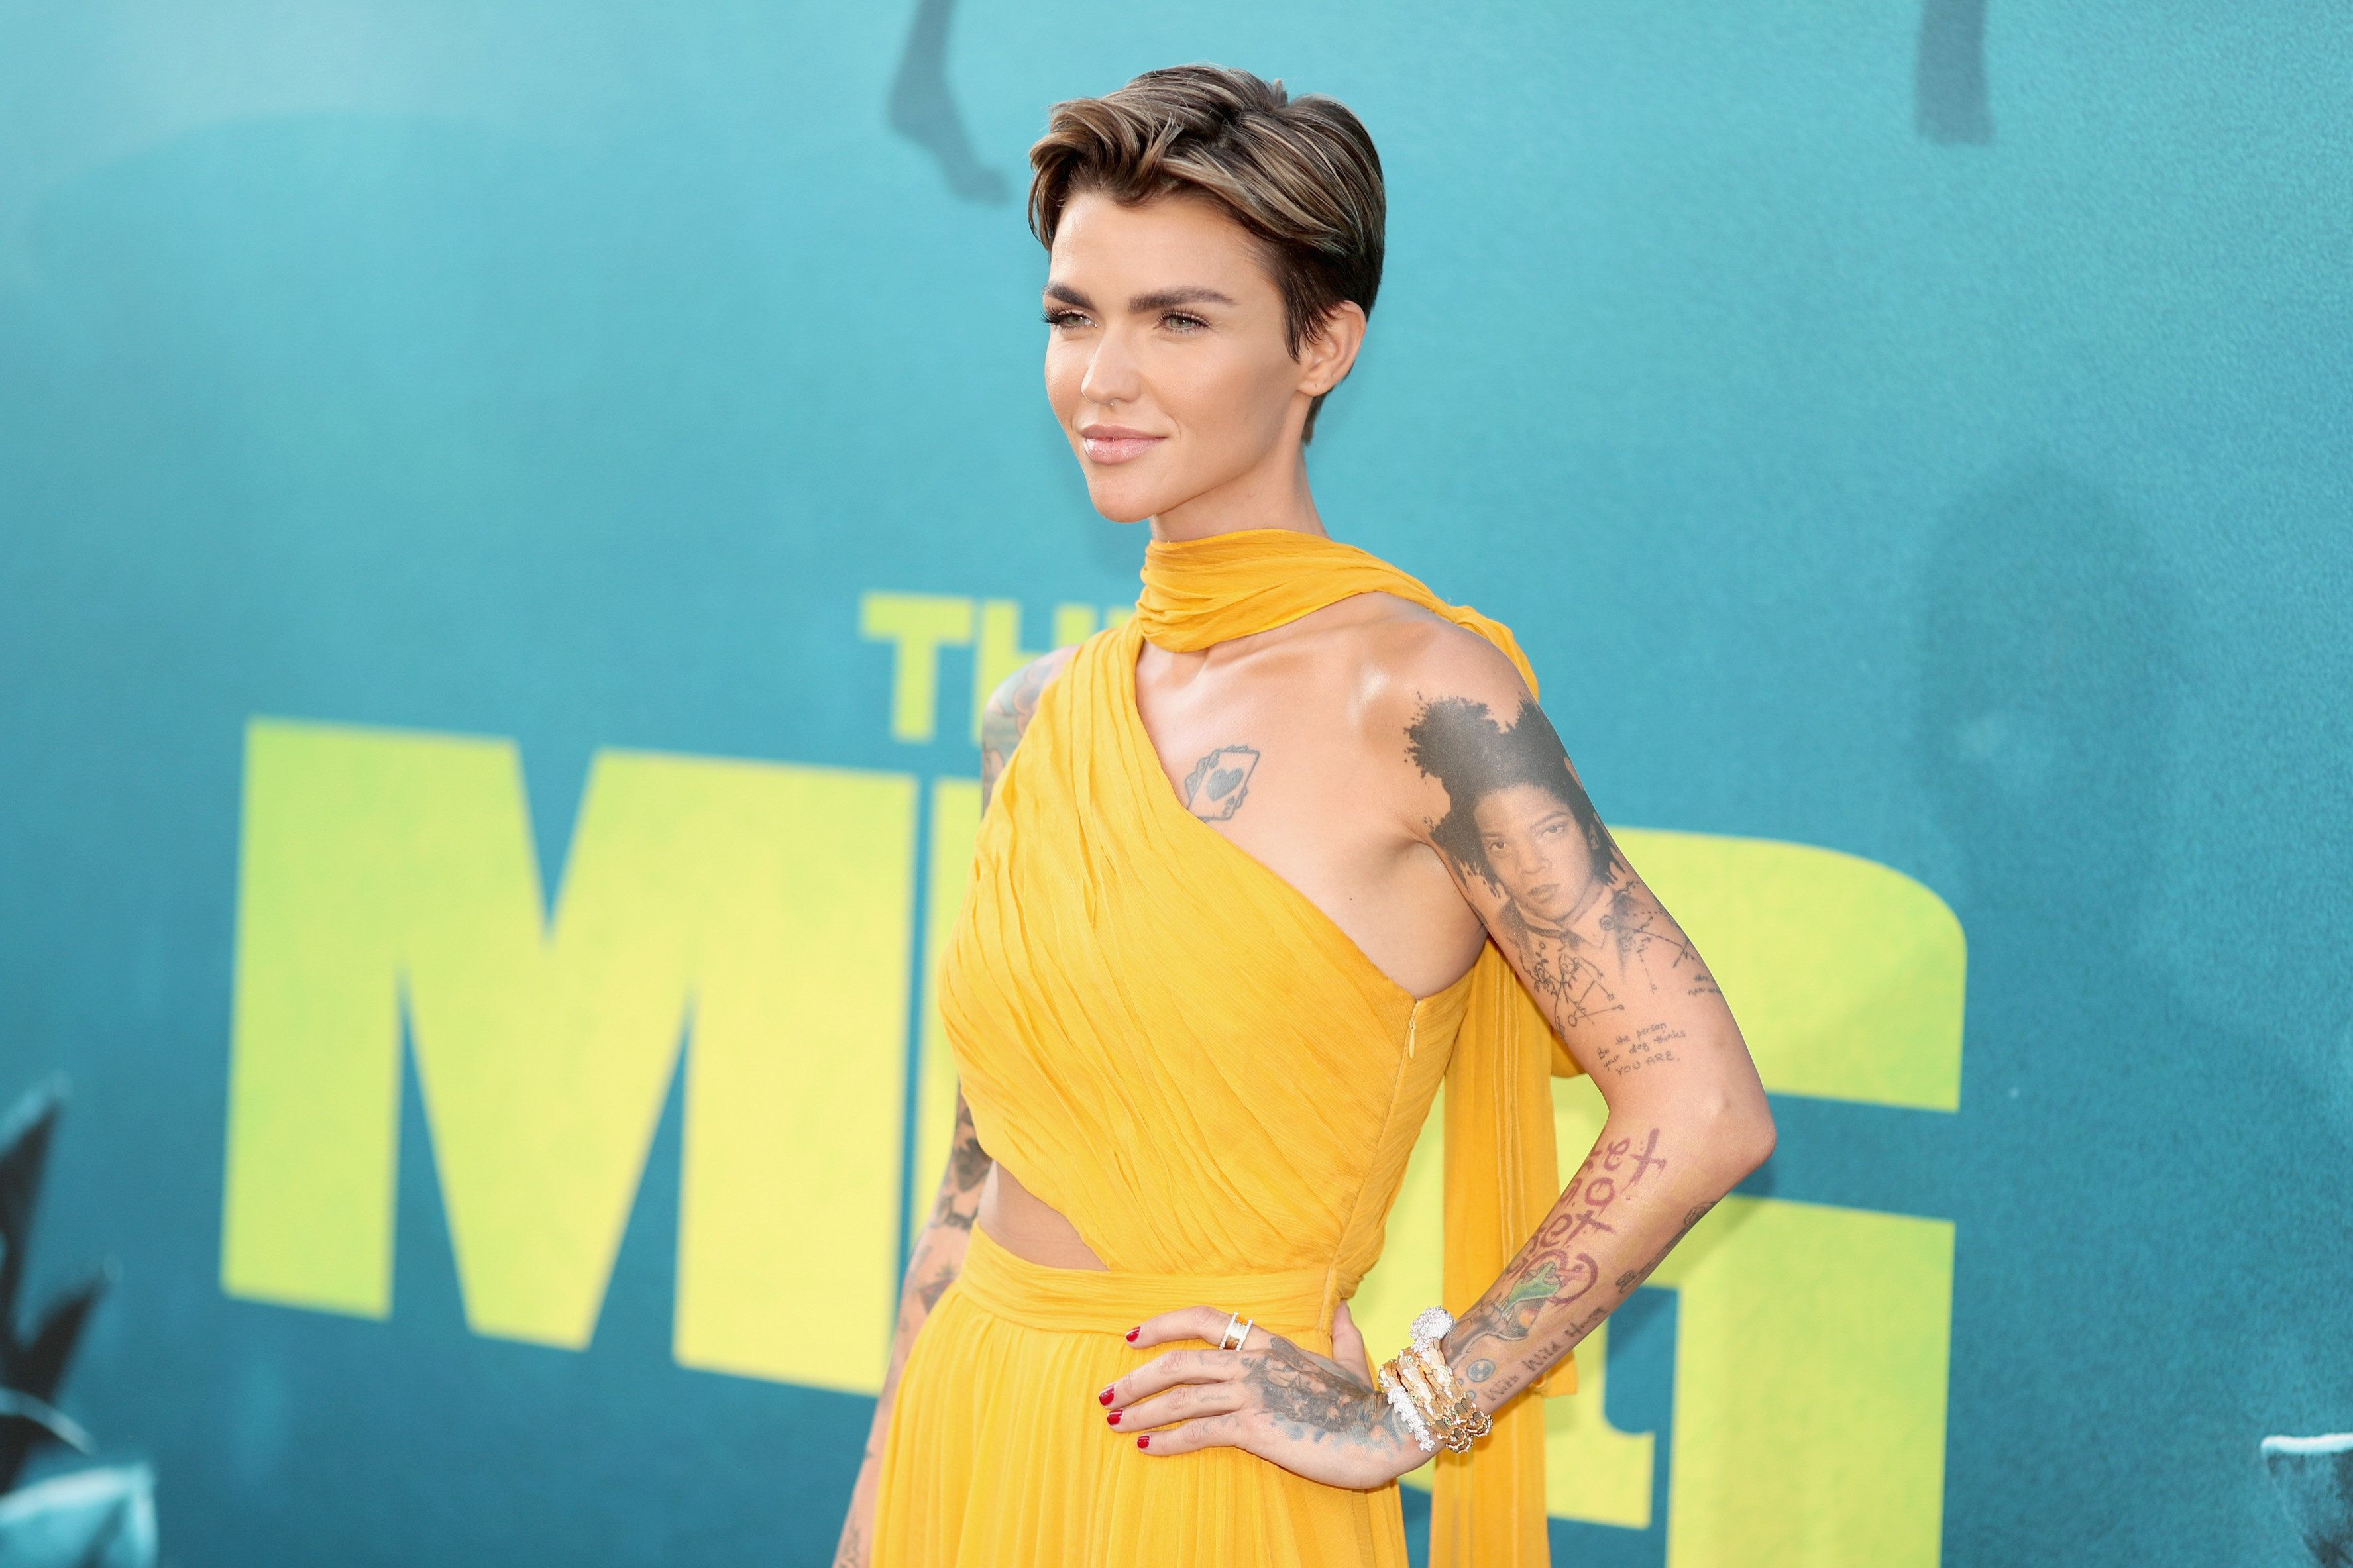 Ruby Rose Will Play Batwoman, Make History As Lesbian Superhero